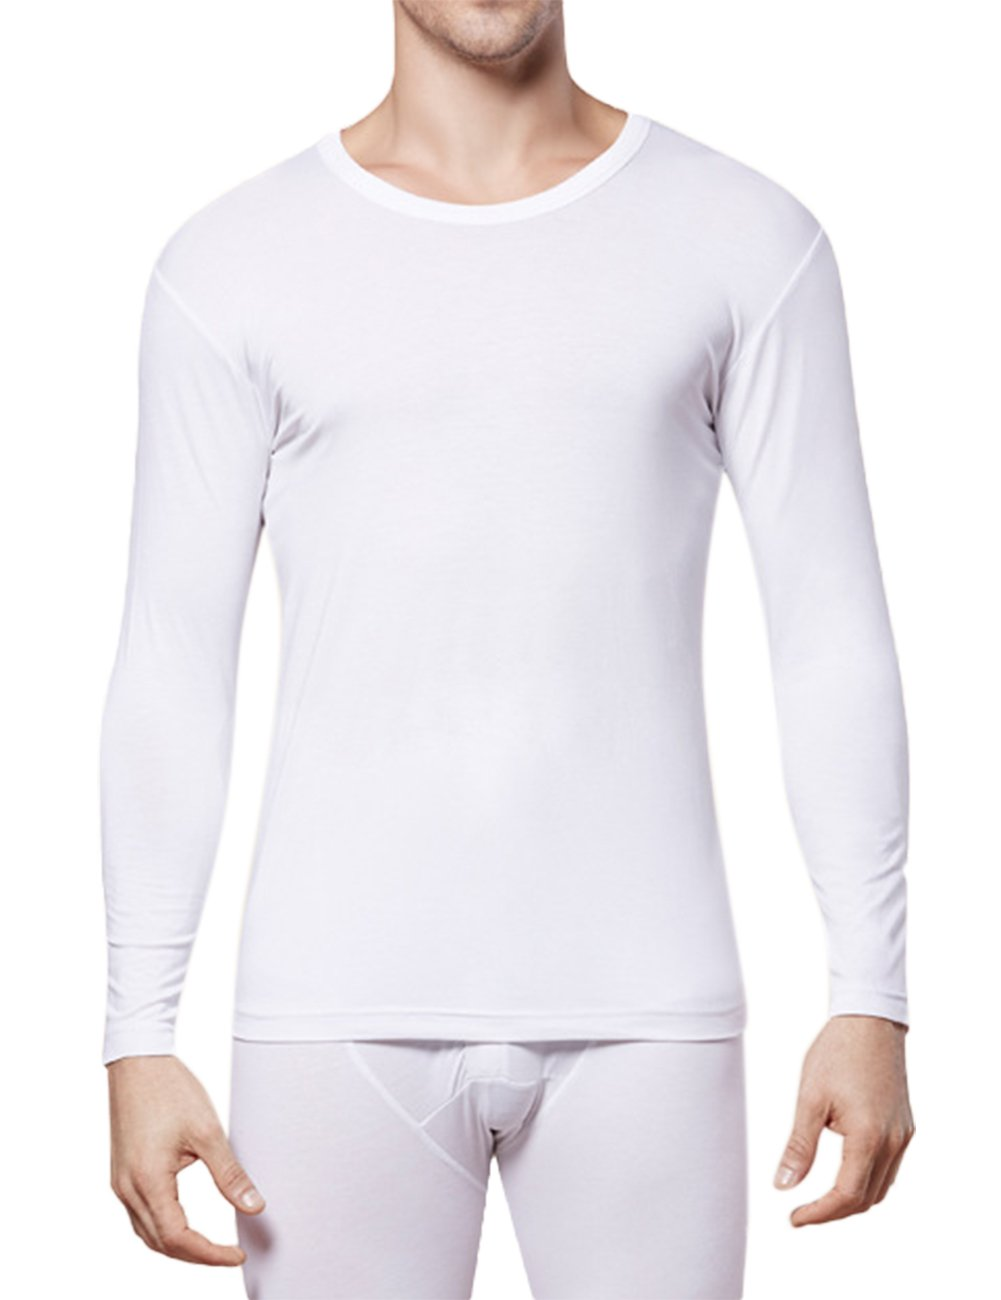 Yiwa Men's Round Neck Long Sleeve Solid Color Thin Bottoming Thermal Underwear Top